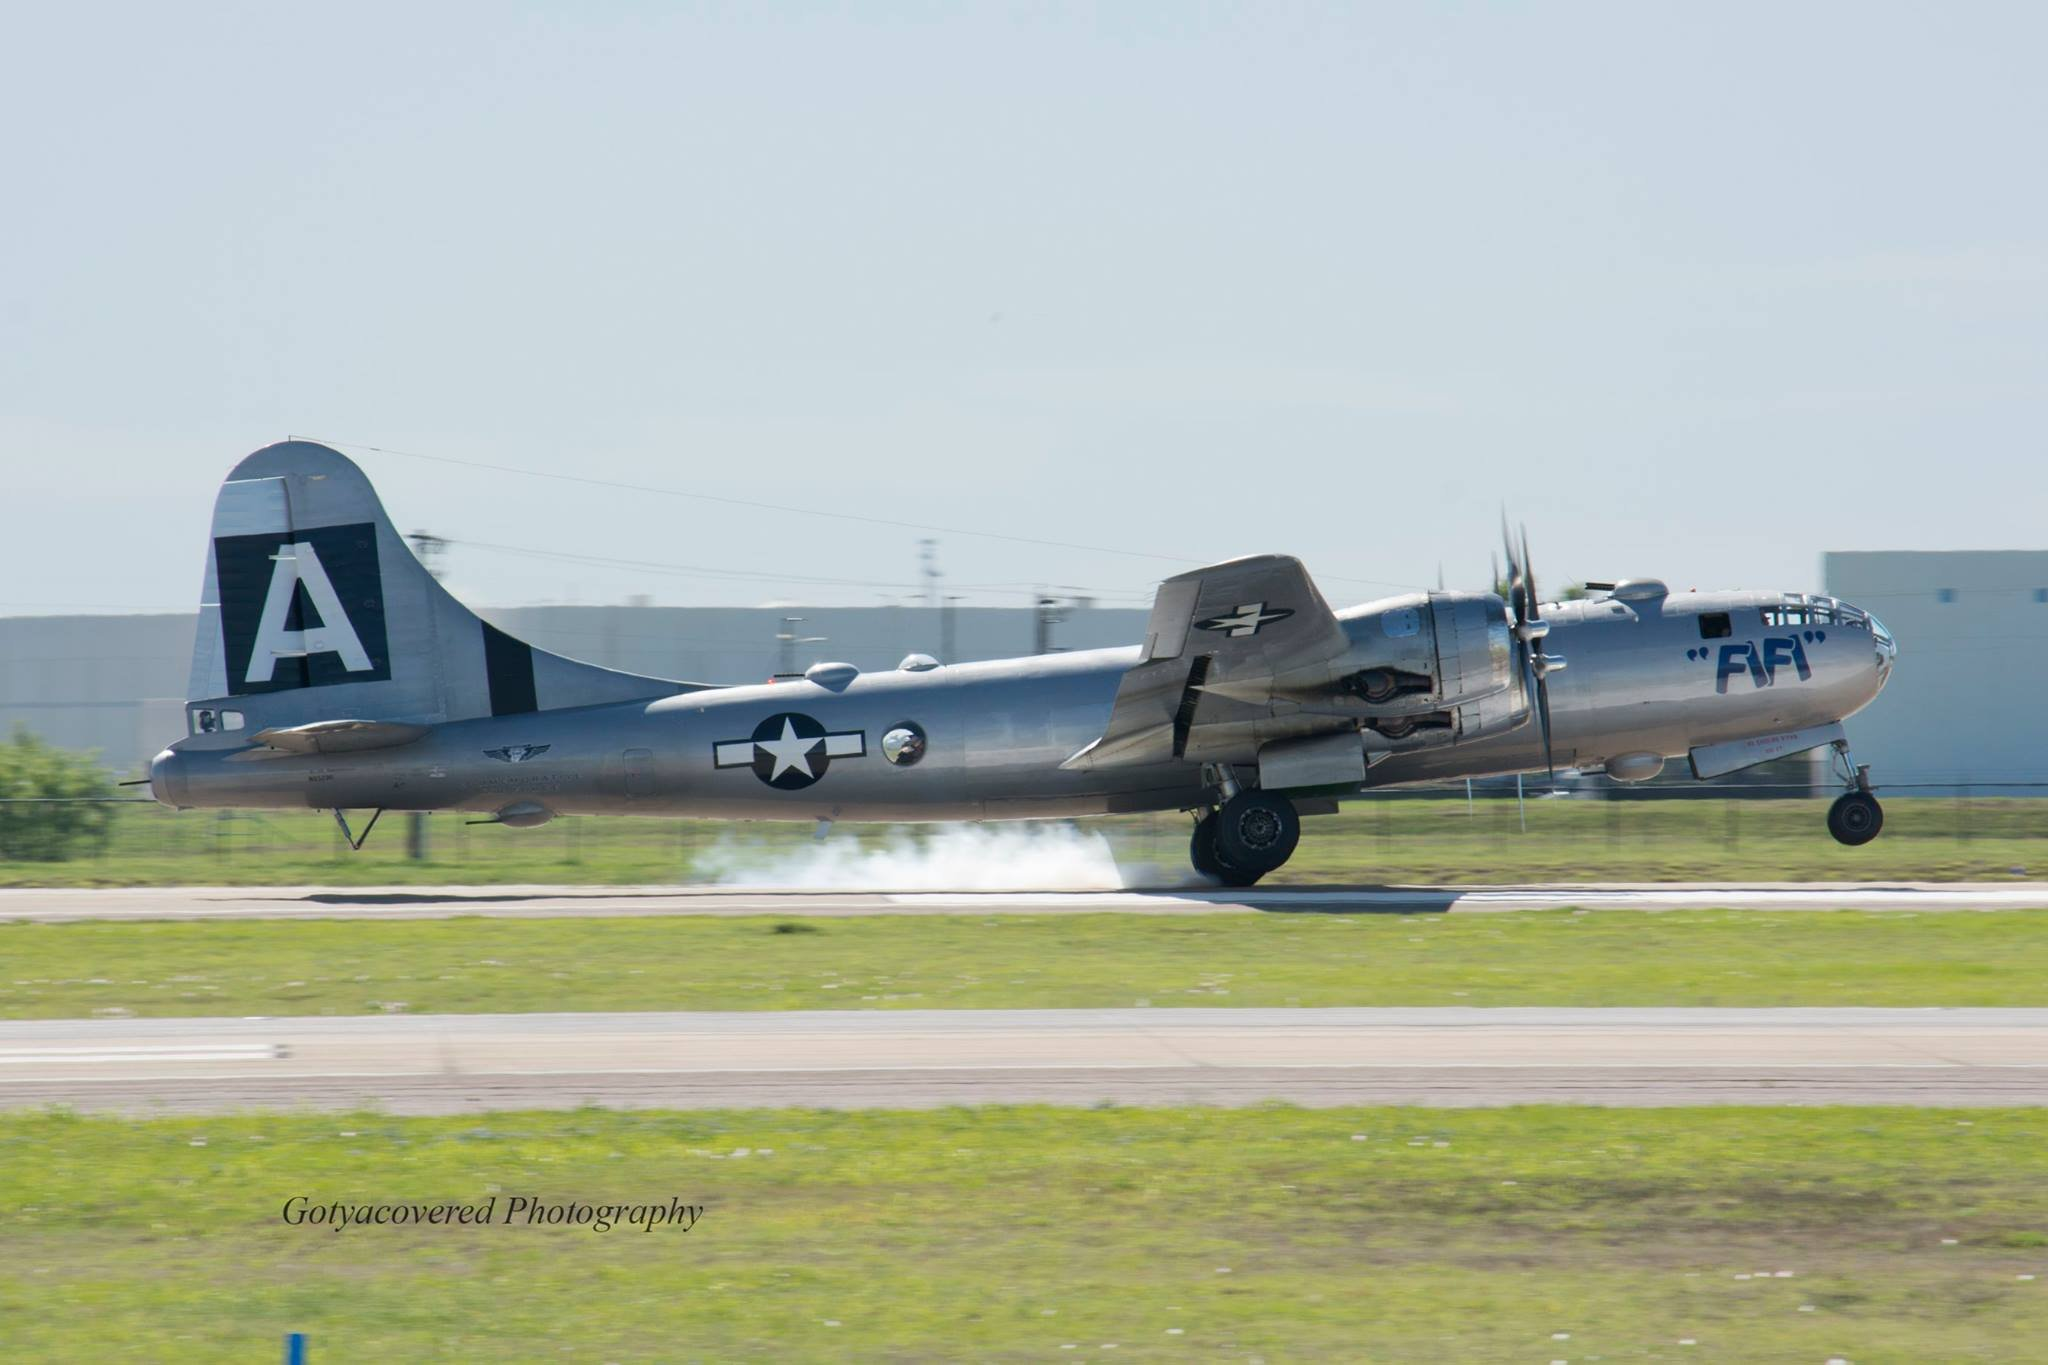 (Source: Commemorative Air Force B29 B24 Squadron via Facebook) .